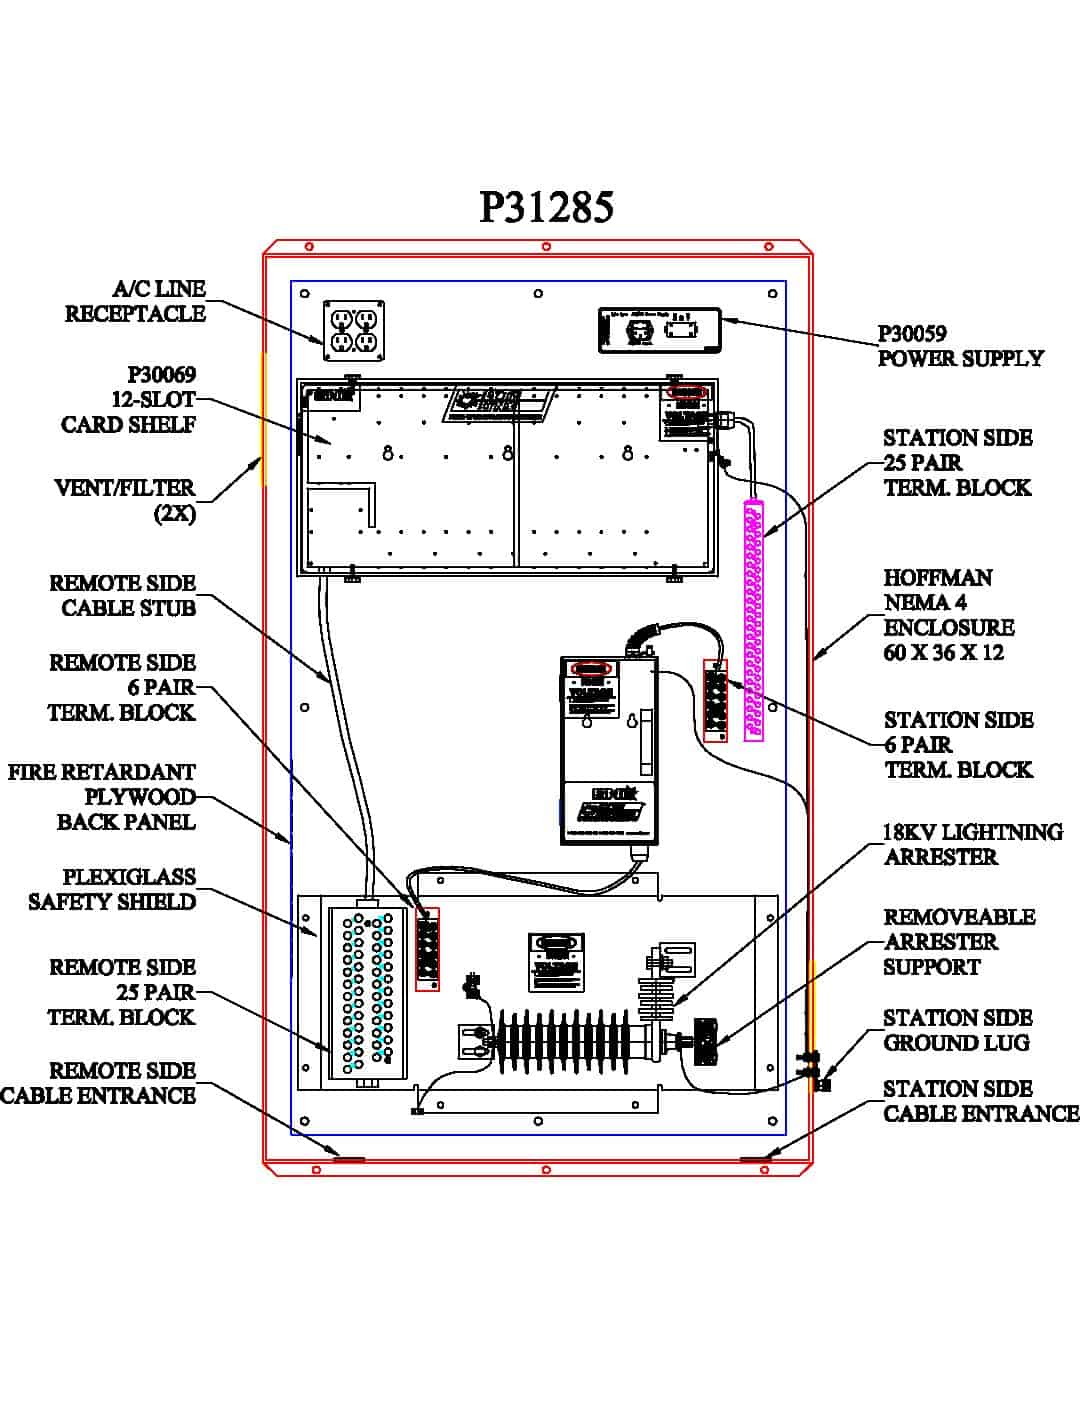 P31285 Turnkey Protection Packages – 12 slot PDF thumbnail